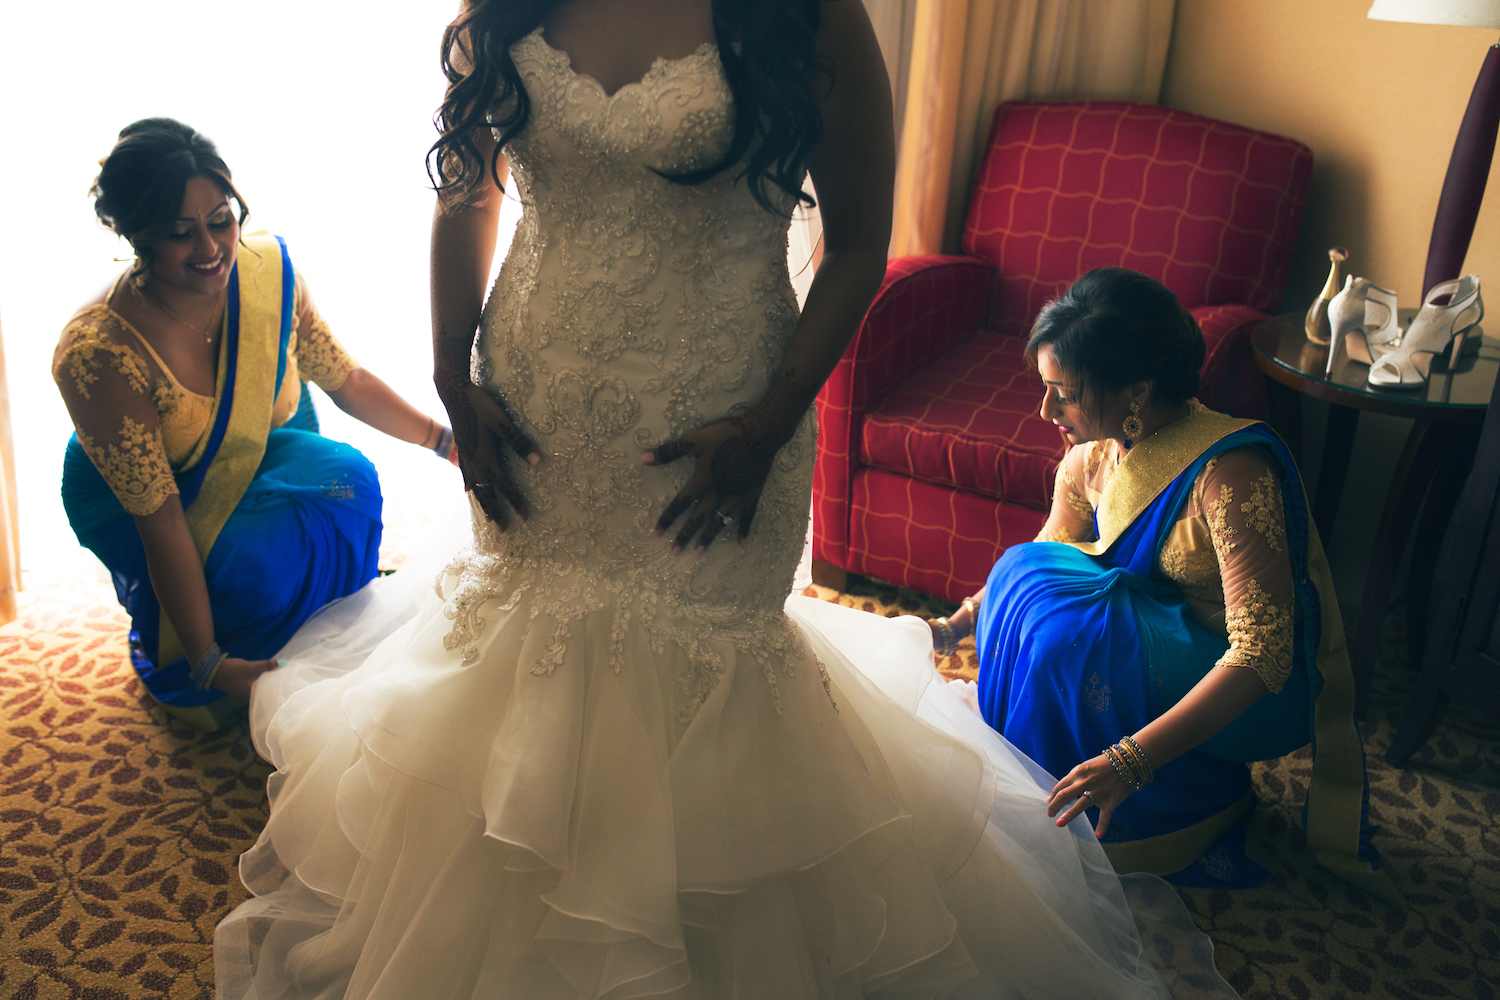 sherry-bride-prep-with-bridesmaids-nj-wedding-photography